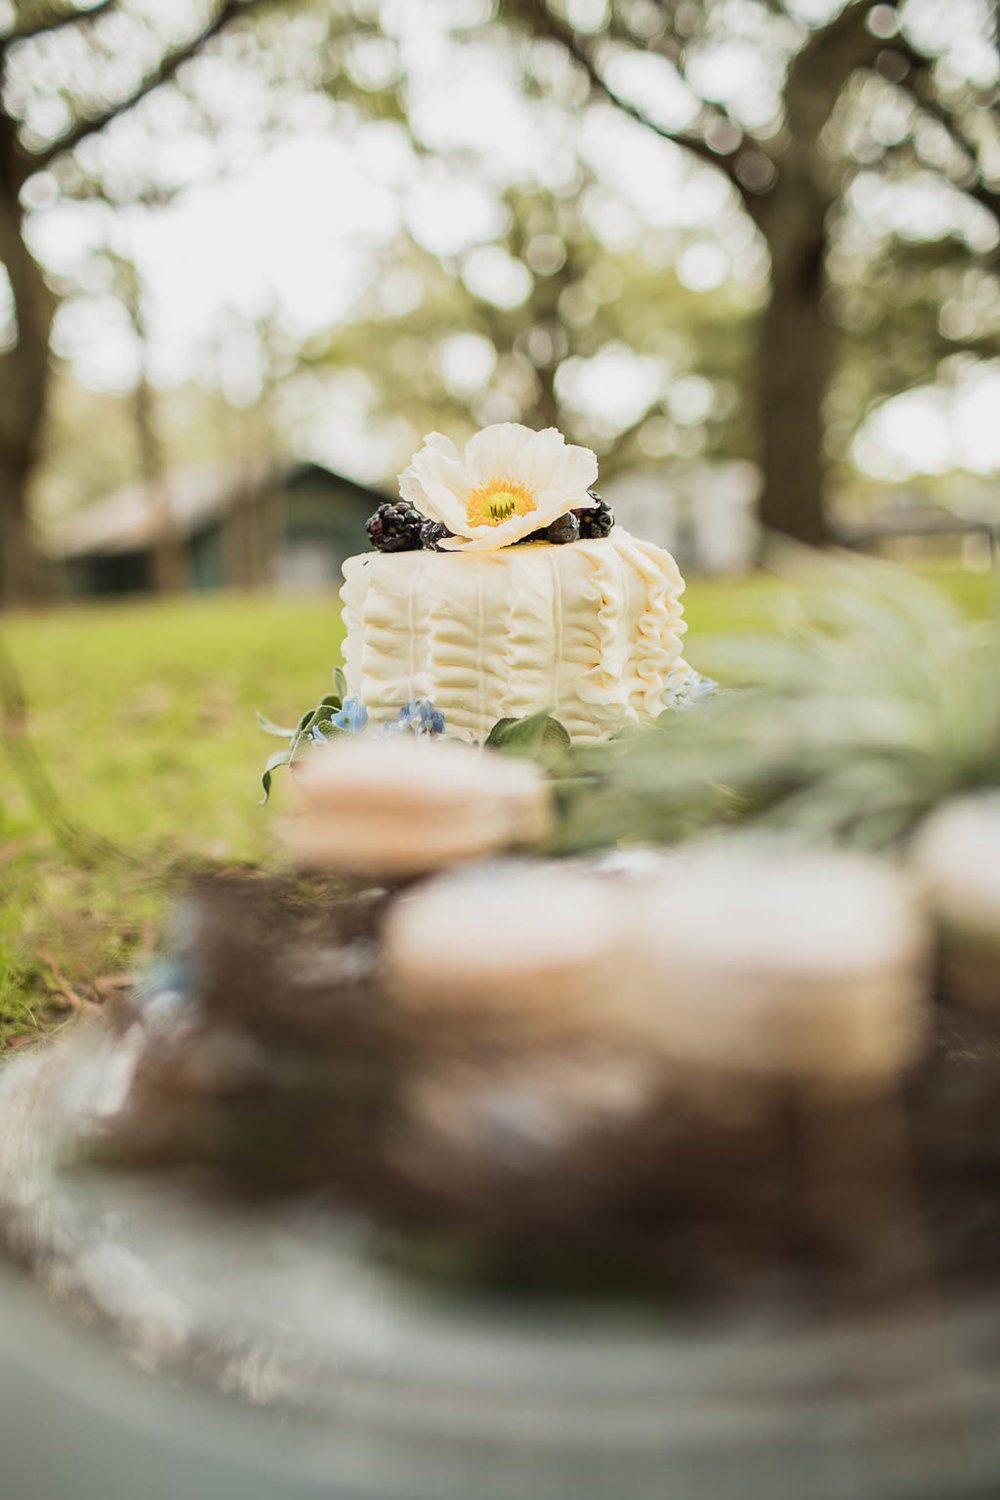 New Orleans Wedding Cake - Bride Film